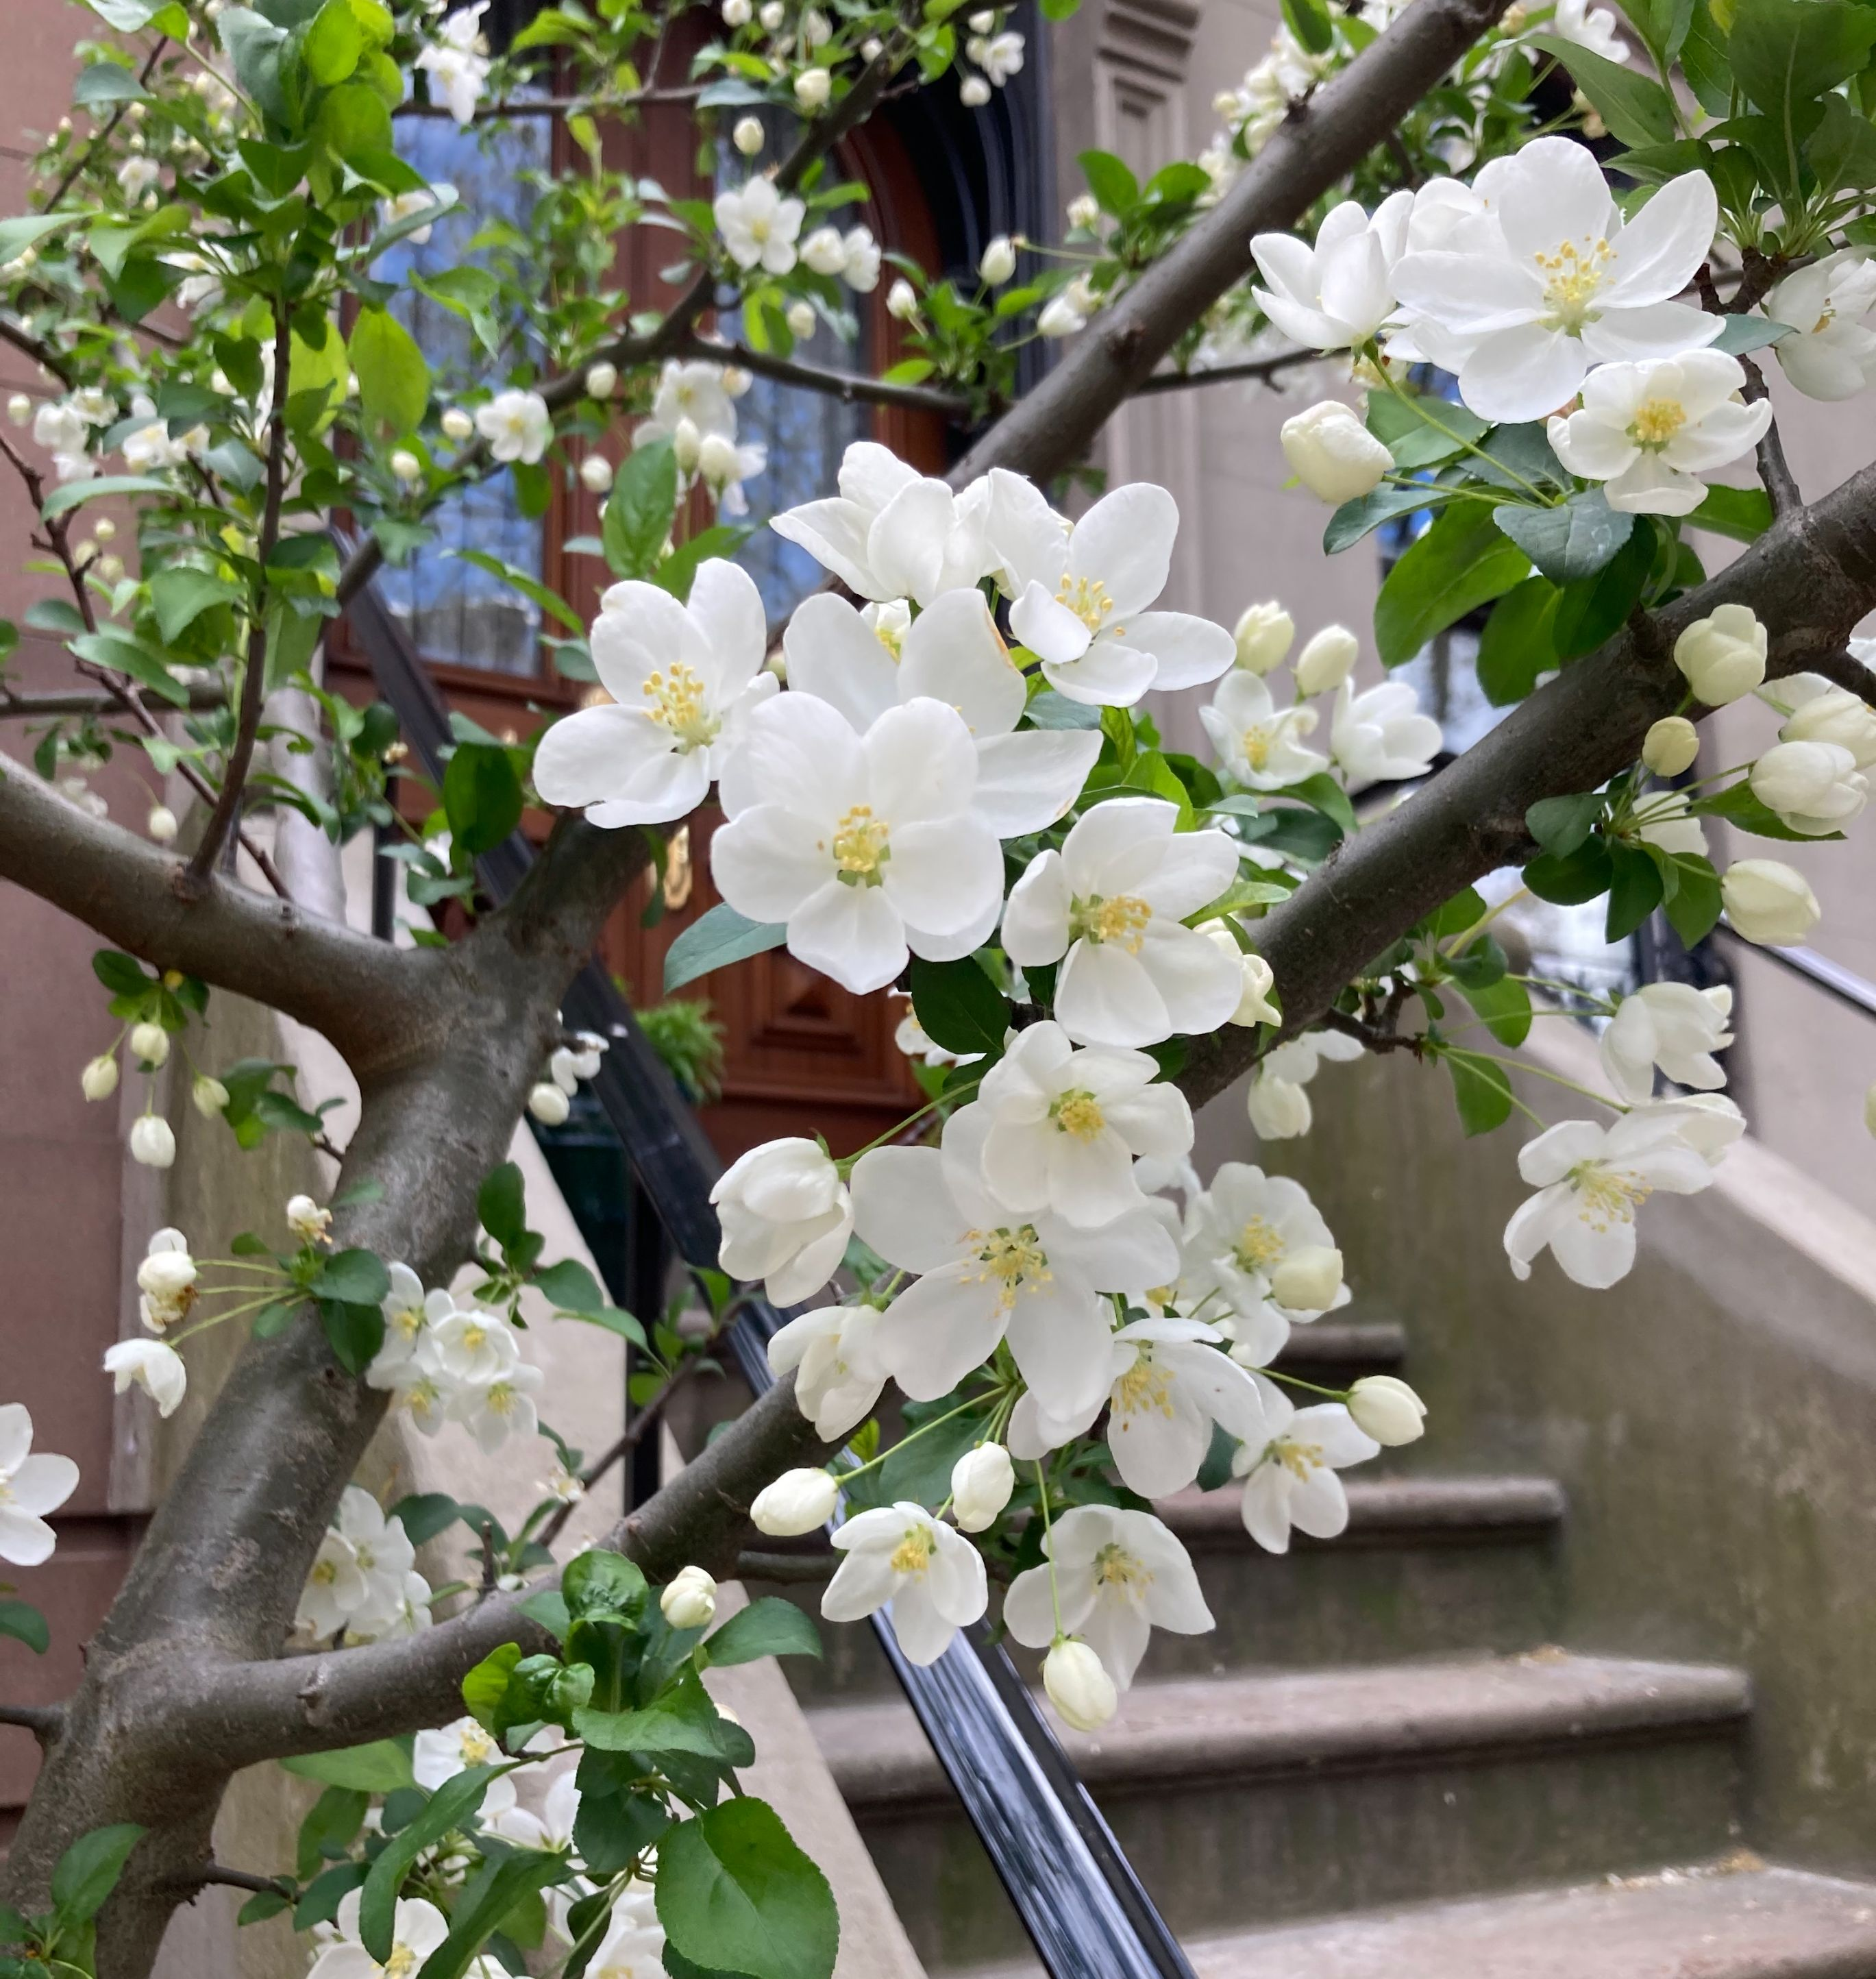 White cherry blossoms with a Brooklyn brownstone stoop in the background